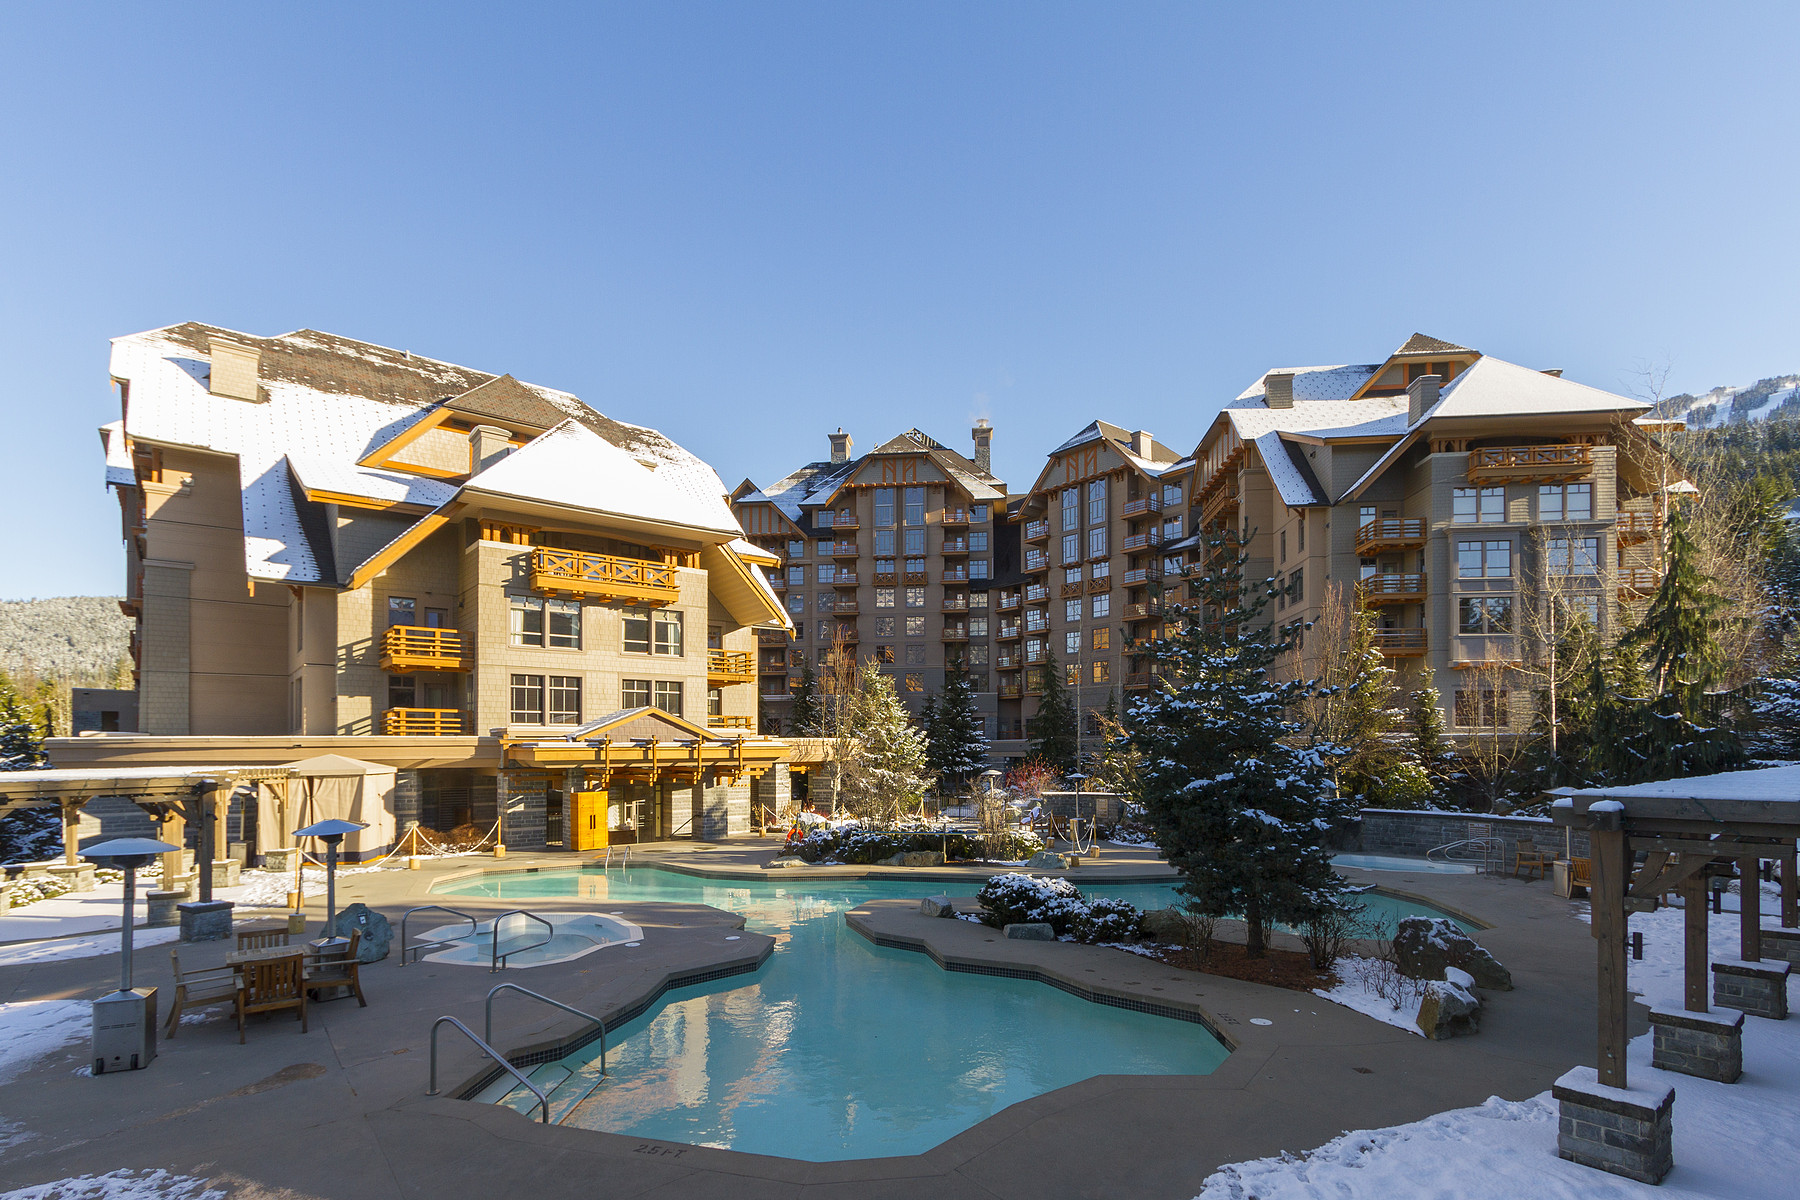 Condominium for Sale at Four Seasons Resort Whistler 255 4591 Blackcomb Way Whistler, British Columbia, V0N 1B4 Canada